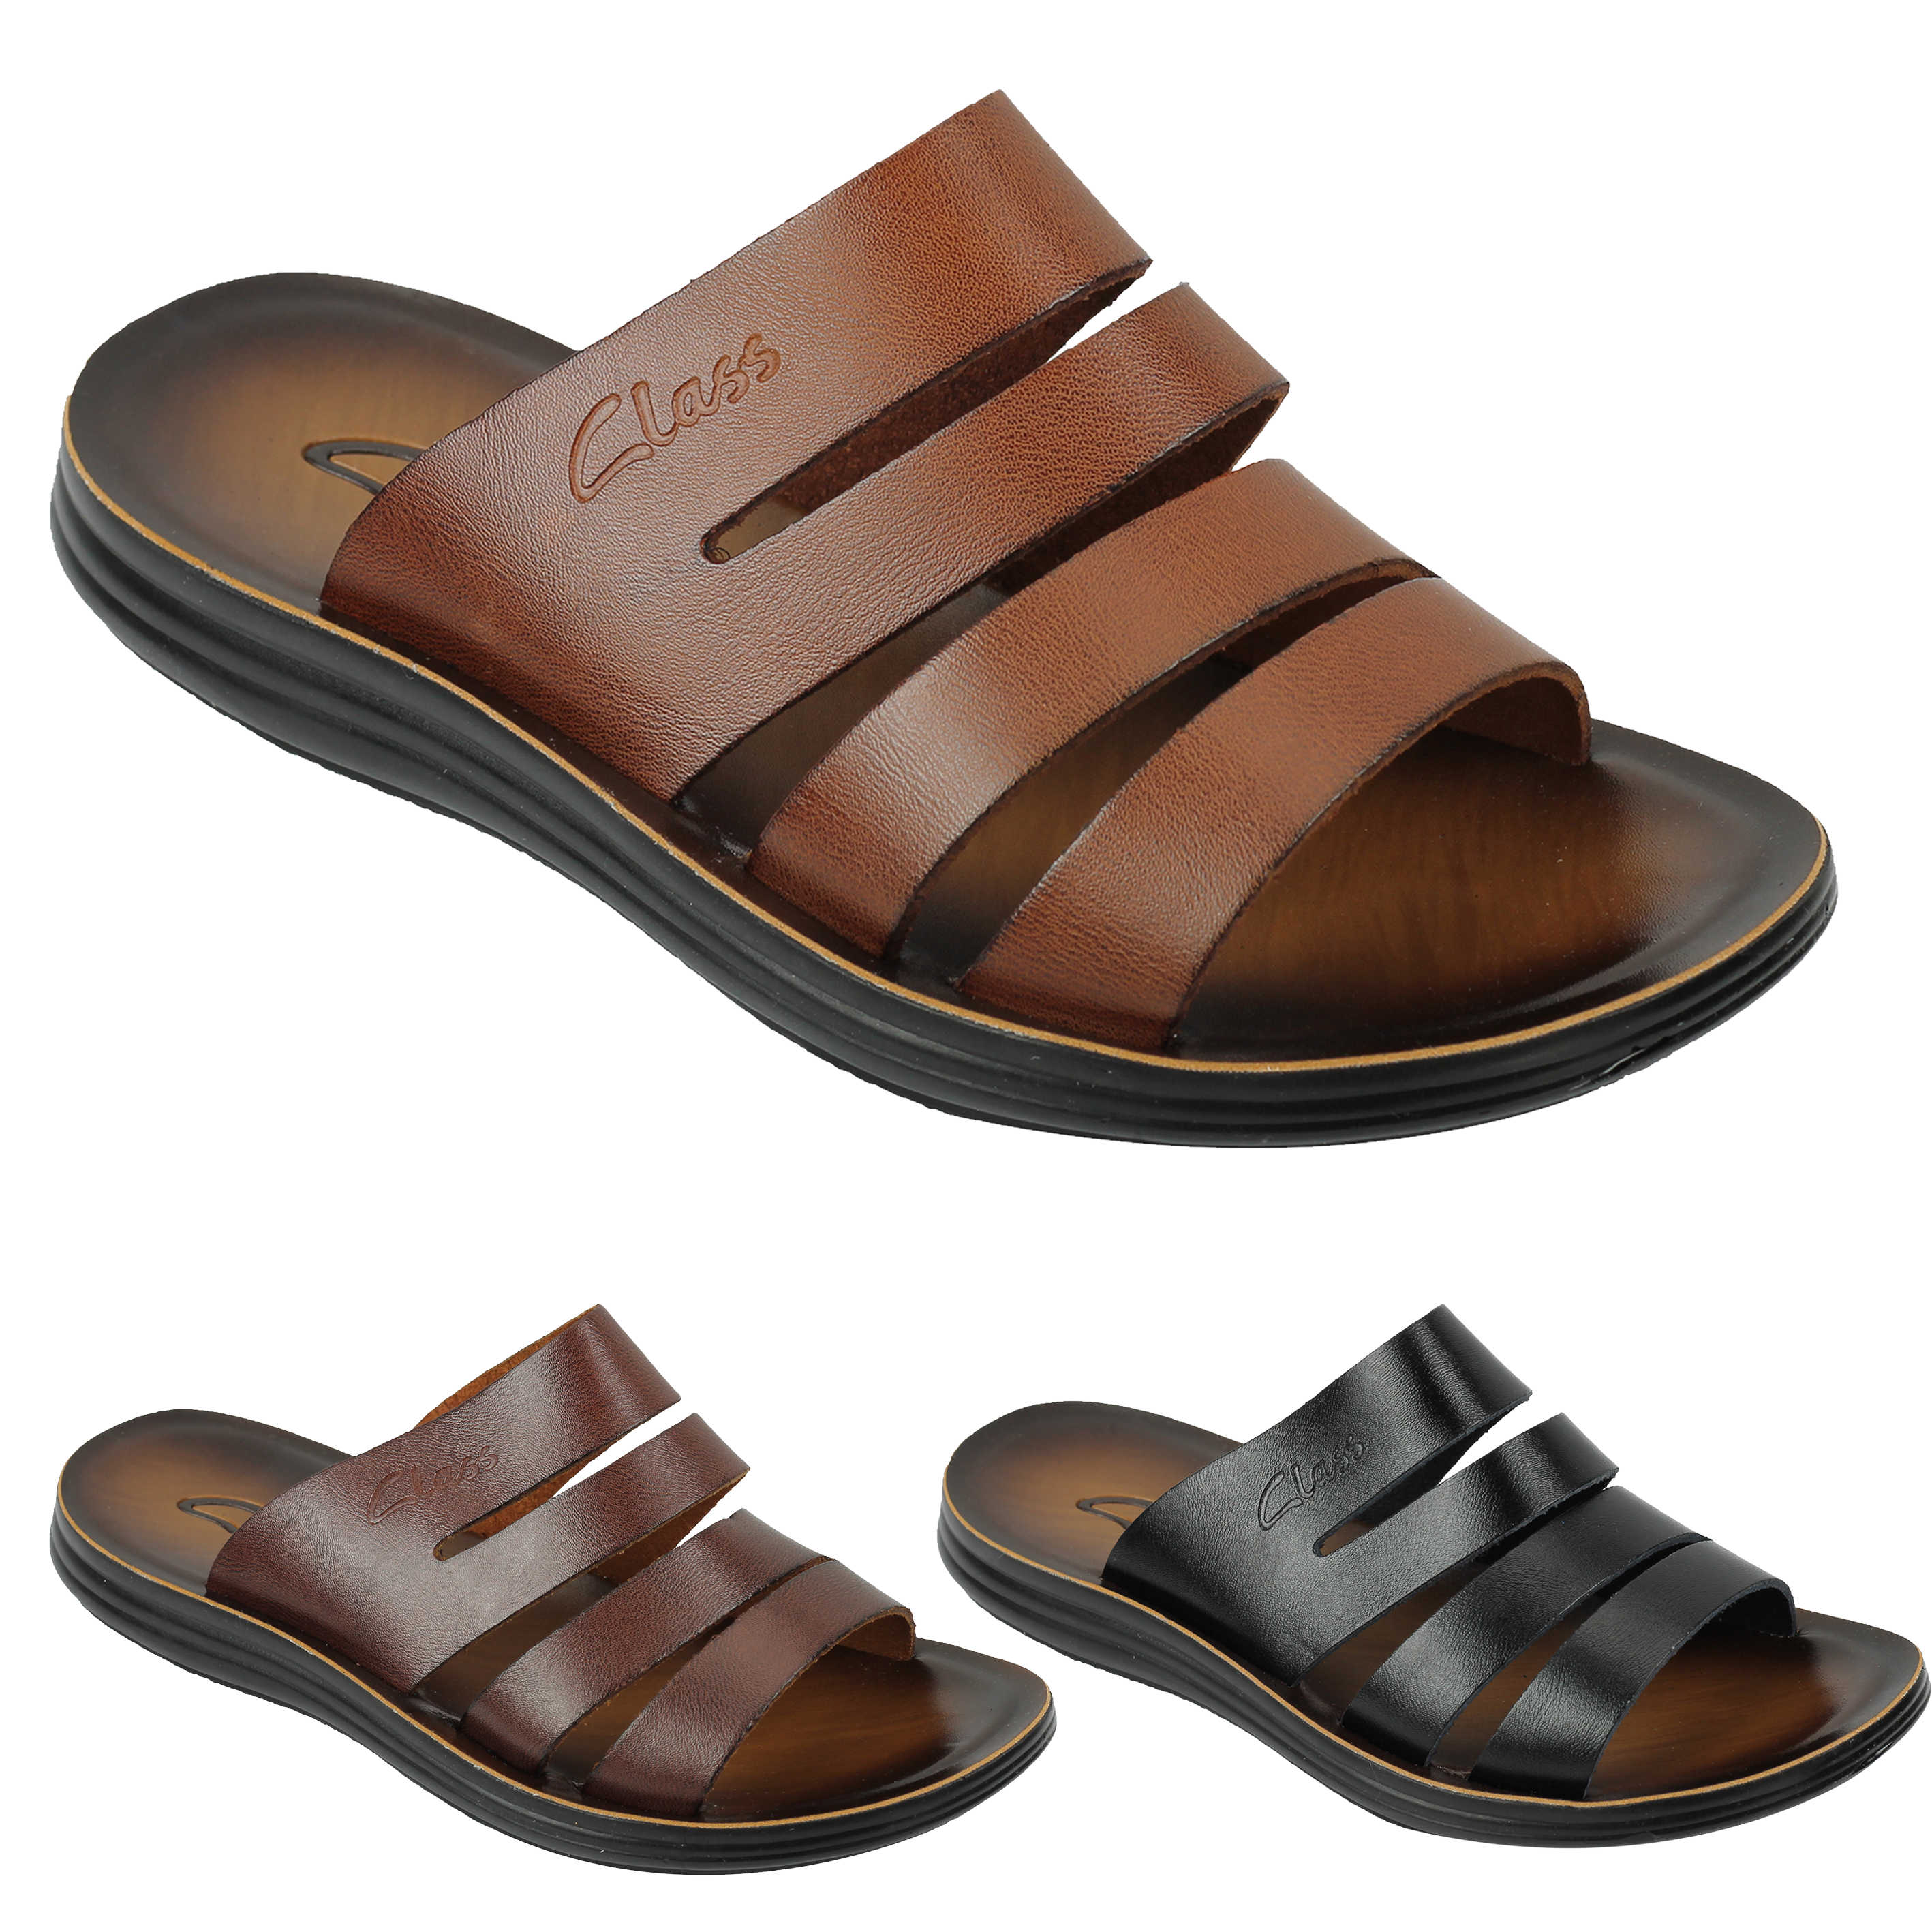 e4edea1c04cc80 New Mens Genuine Leather Sandals Beach Walking Jesus Slippers Slider Black  Brown